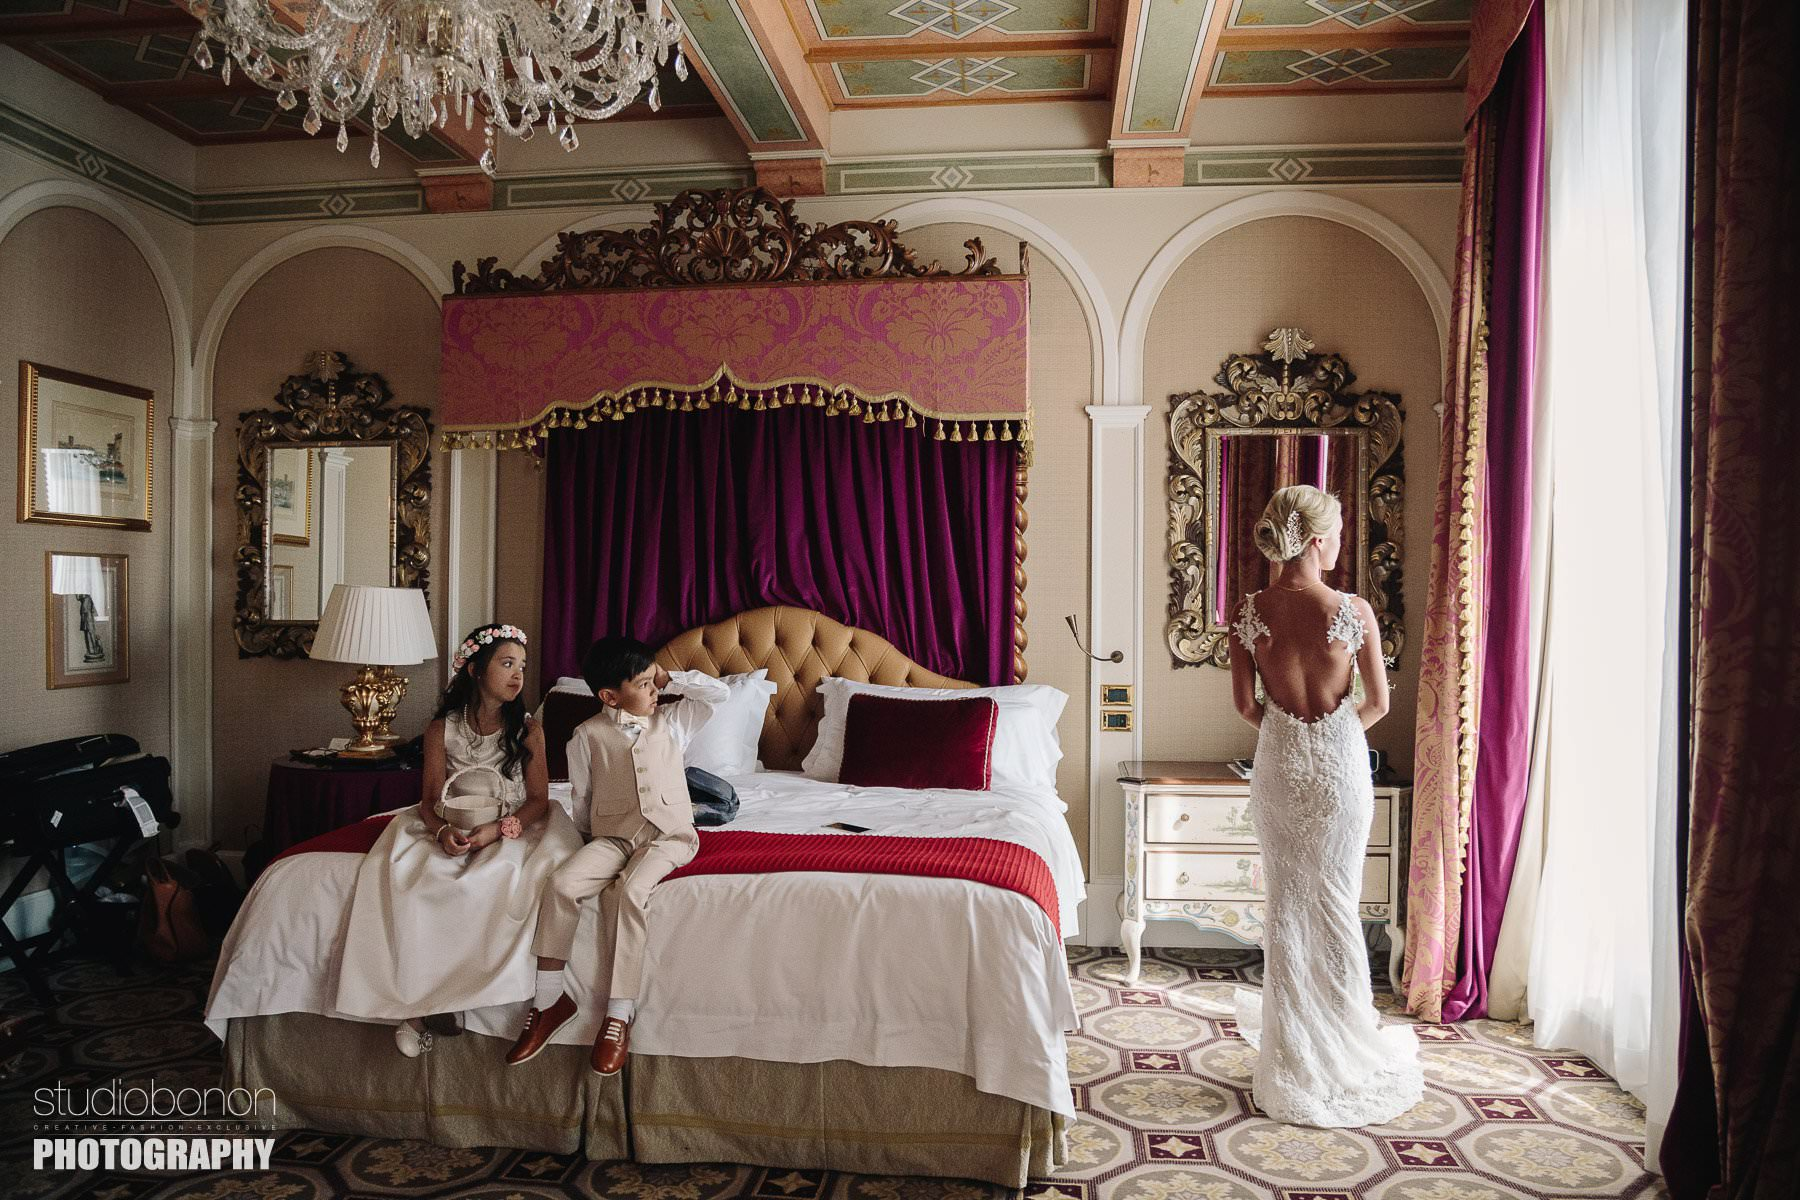 Elegant bride bride in her wedding gown at St. Regis luxury suite in Florence with flower girl and rig boy